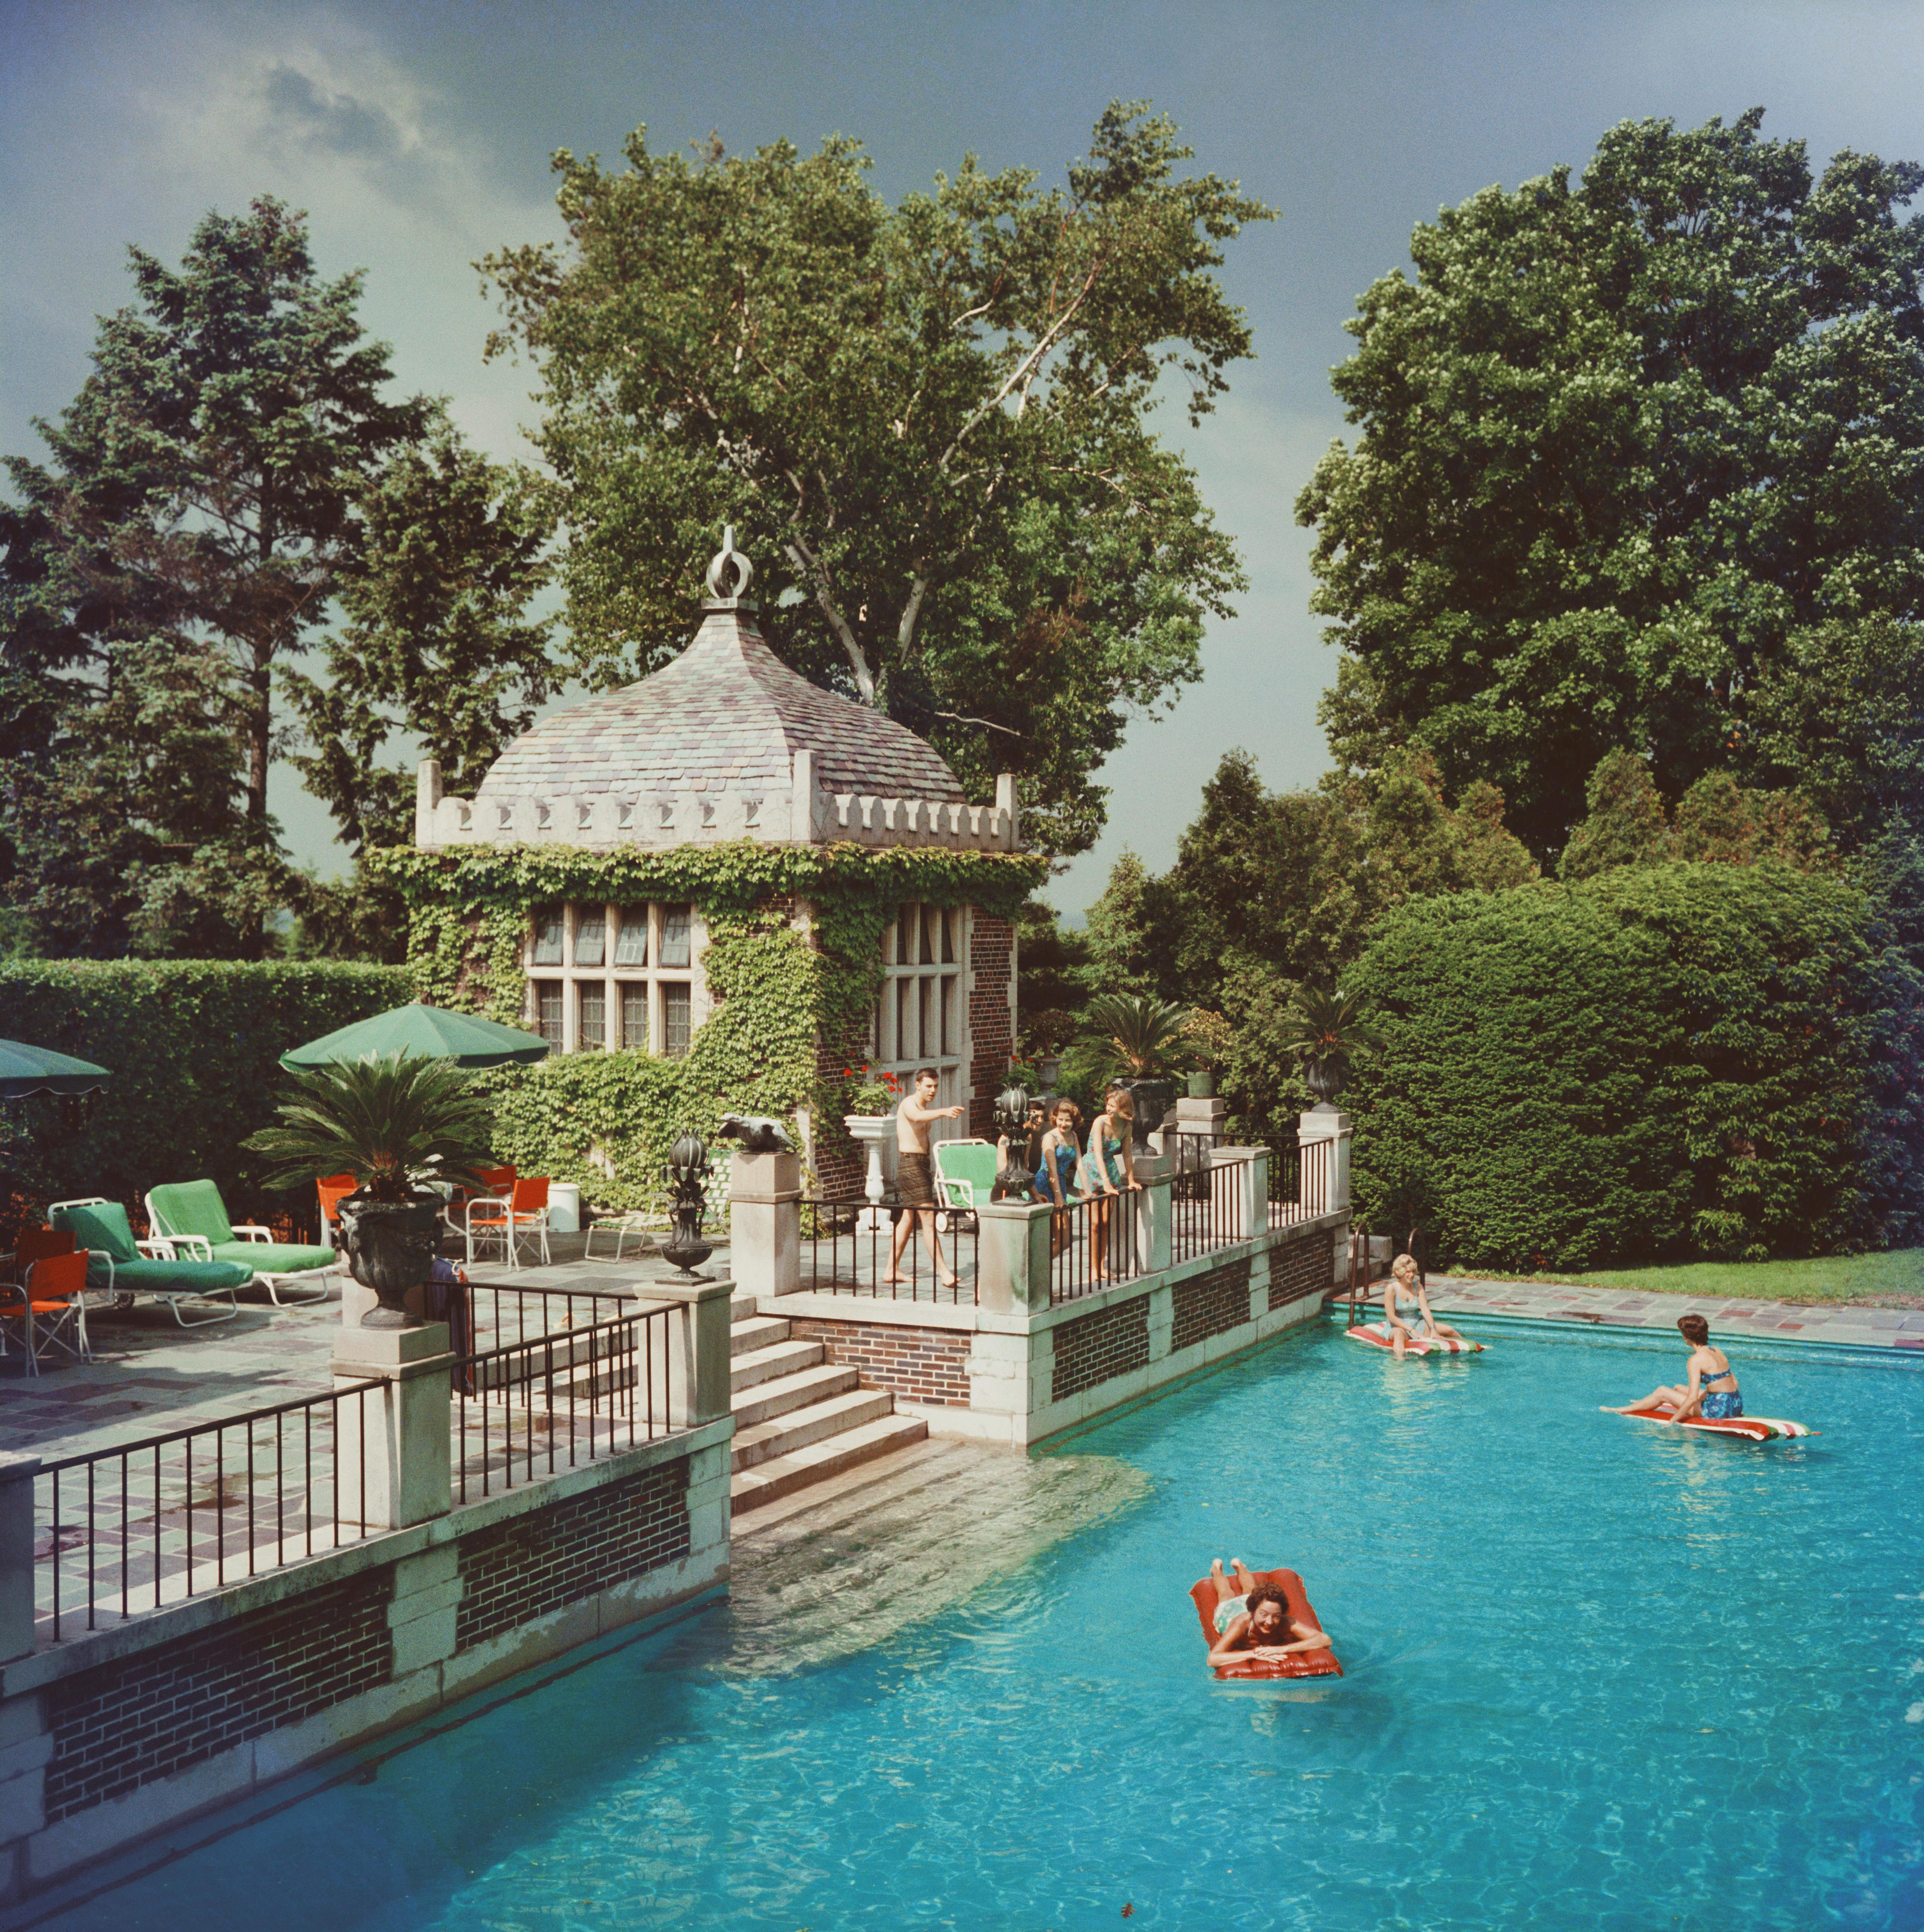 Family Pool, Estate Edition Photograph